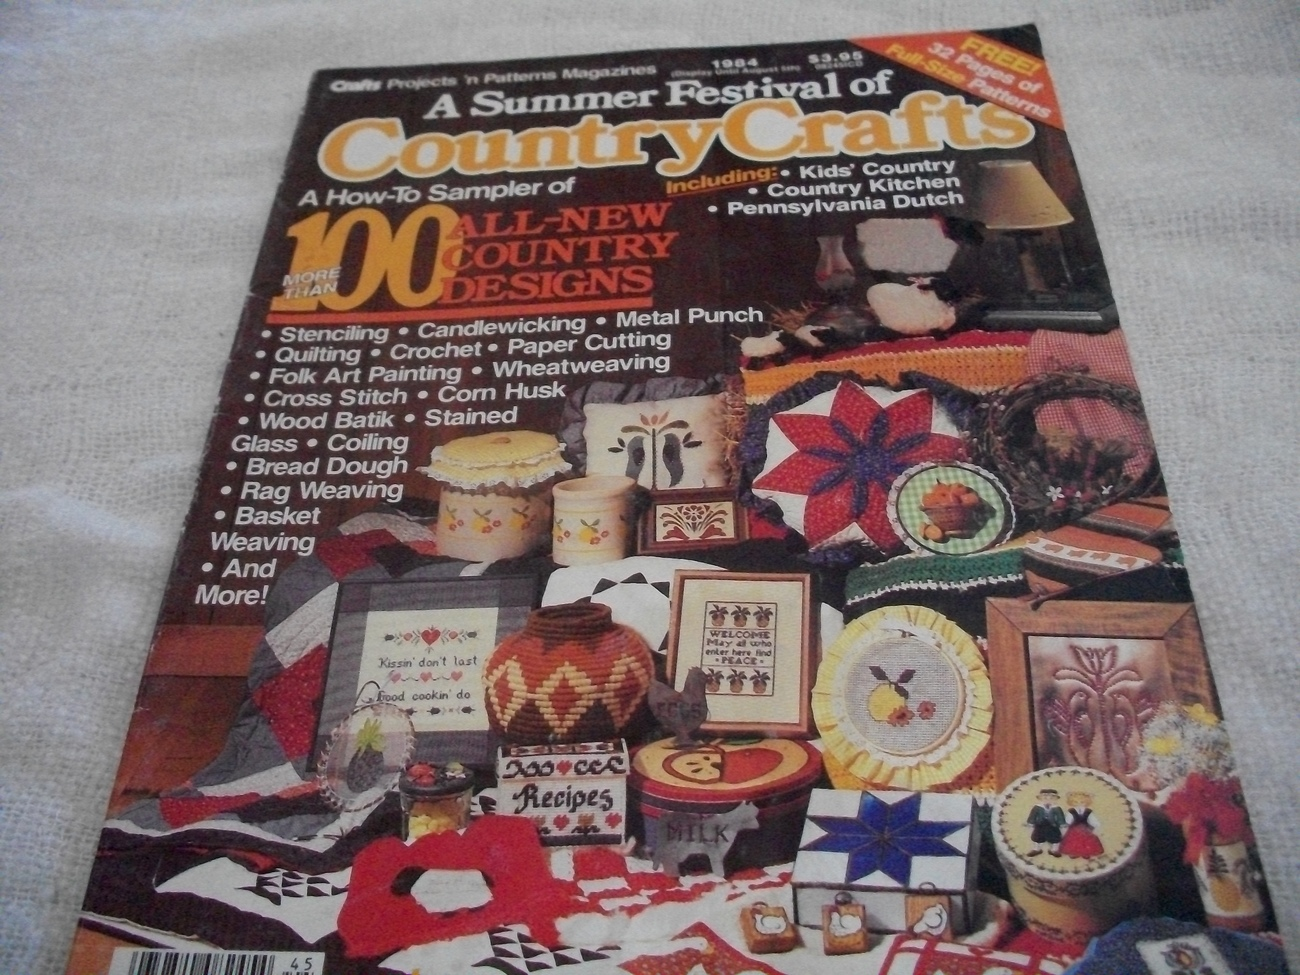 Primary image for A Summer Festival of Country Crafts 1984 Magazine